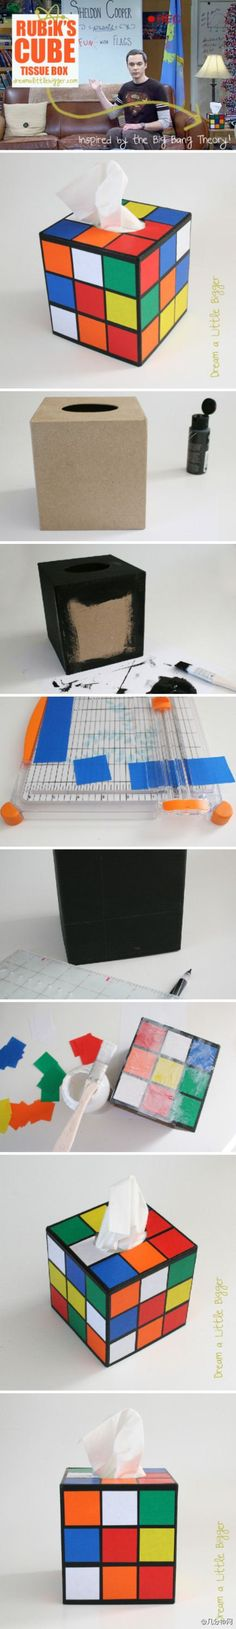 Cute and easy to do - Rubiks Cube tissue box holder! Can make this as gift for guys (who like Rubiks Cube)! Geek Crafts, Fun Crafts, Diy And Crafts, Arts And Crafts, Paper Crafts, Diy Projects To Try, Craft Projects, Deco Gamer, Ideias Diy